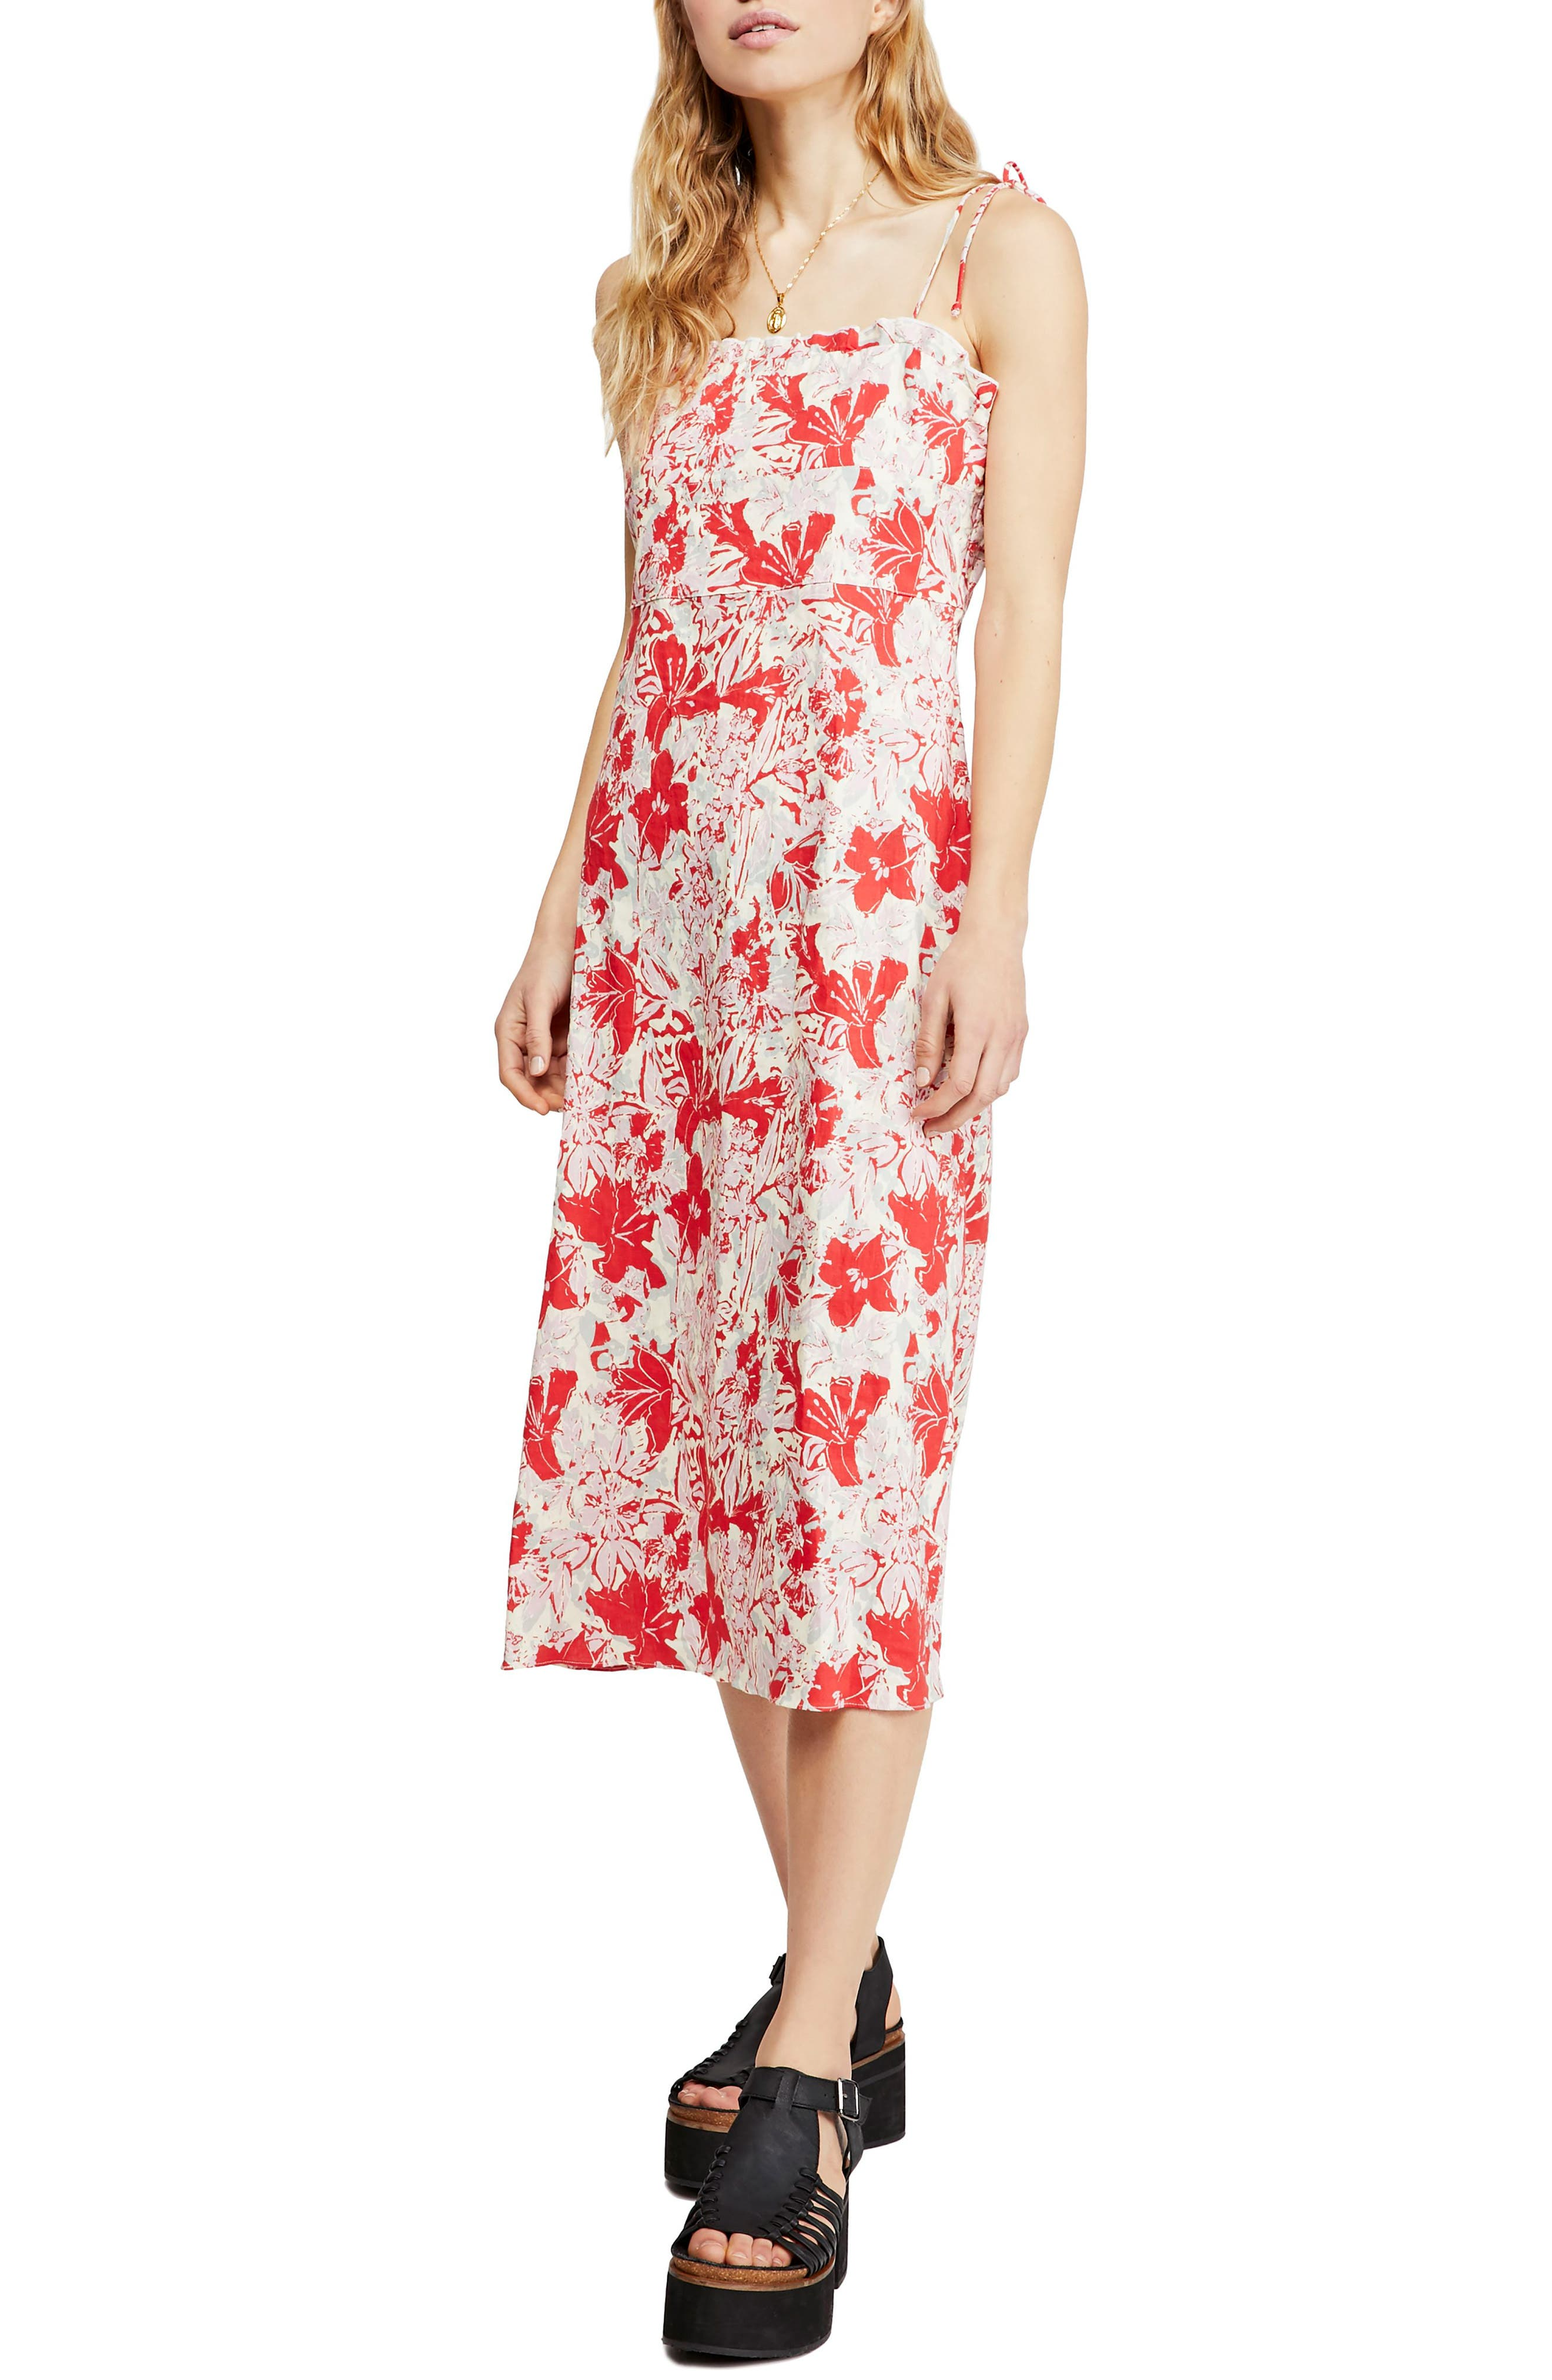 Free People Beach Party Tie Shoulder Midi Dress, Red